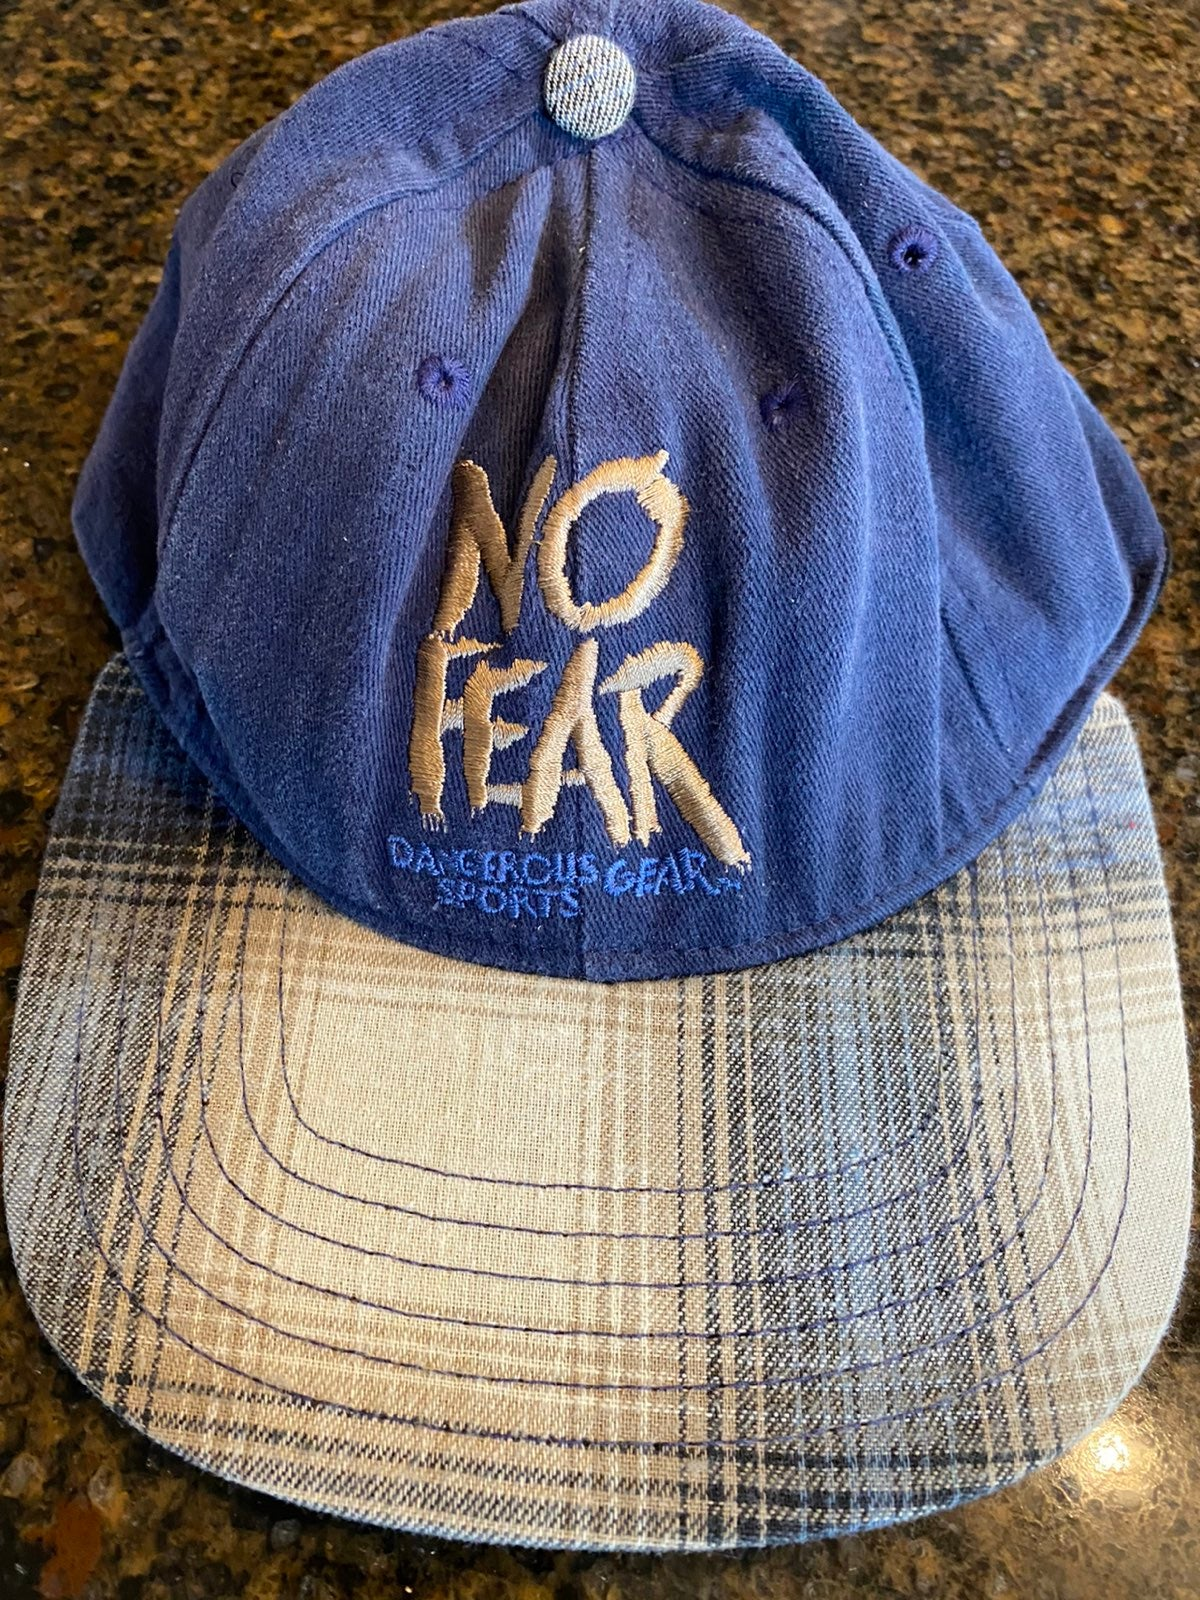 Vintage no fear hat 90s extreme sports